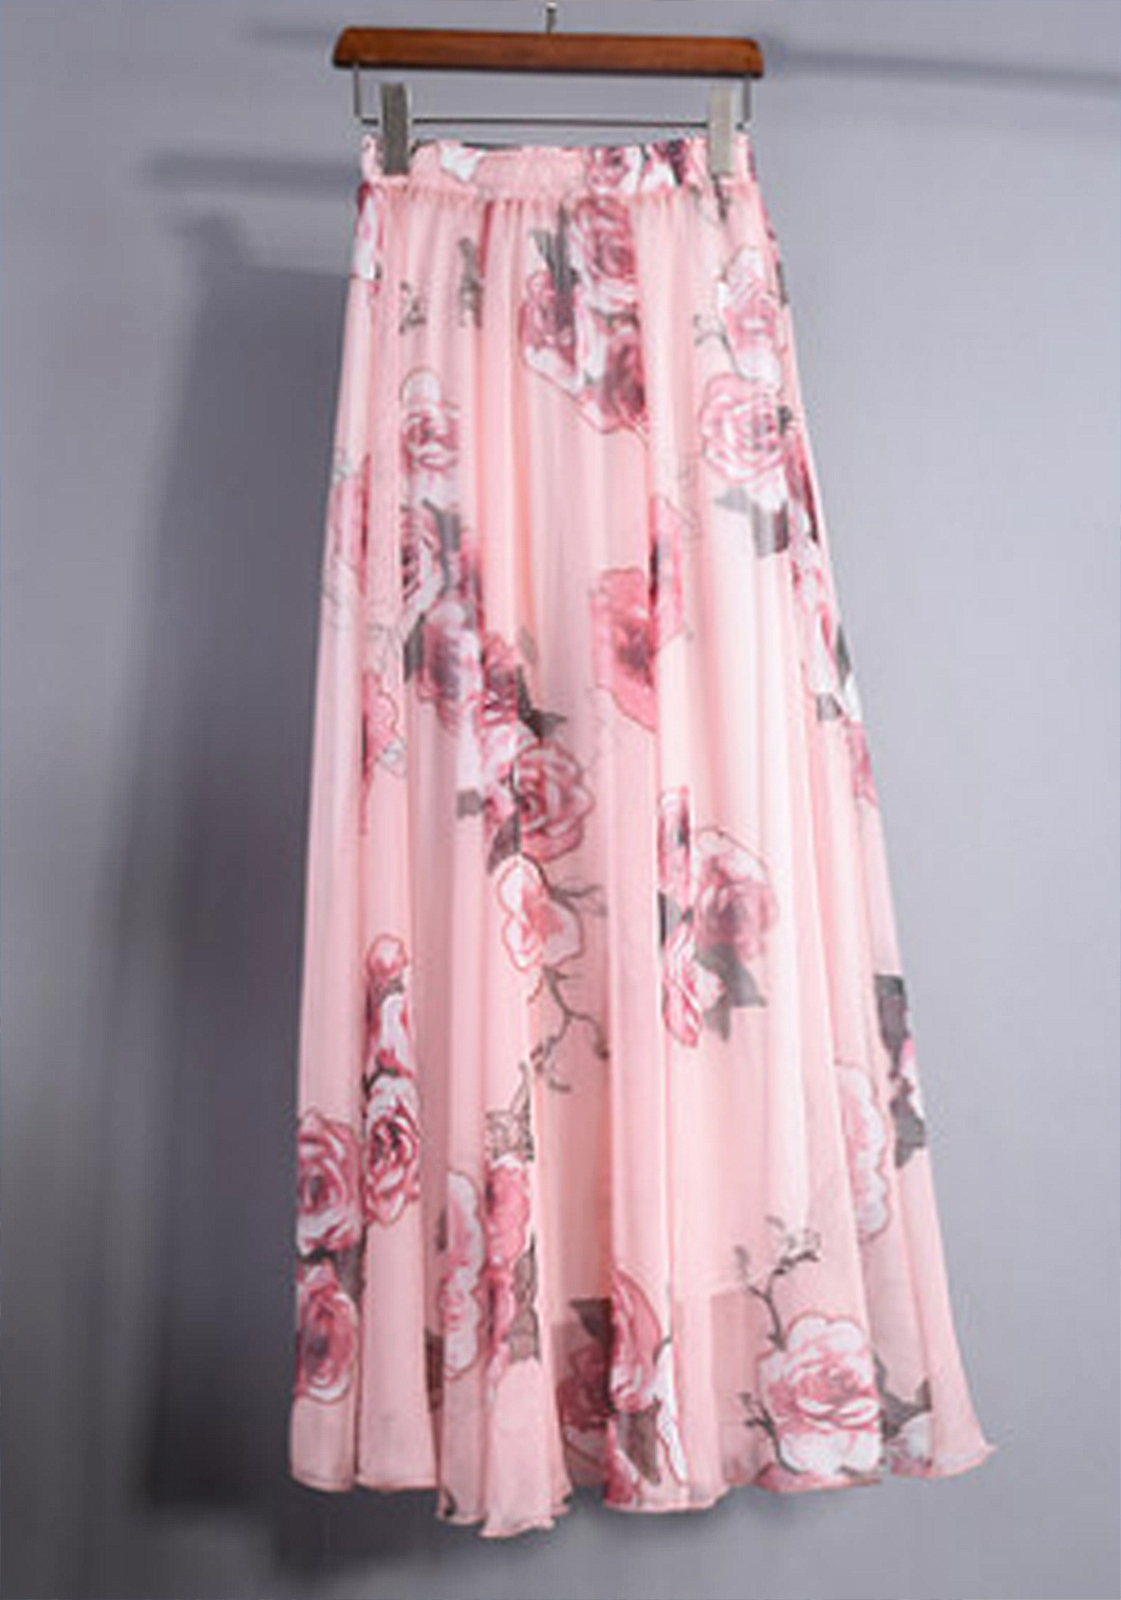 Peach Peonies Floral Chiffon Maxi Skirt Long Skirt.Spring Summer Flowers Skirt